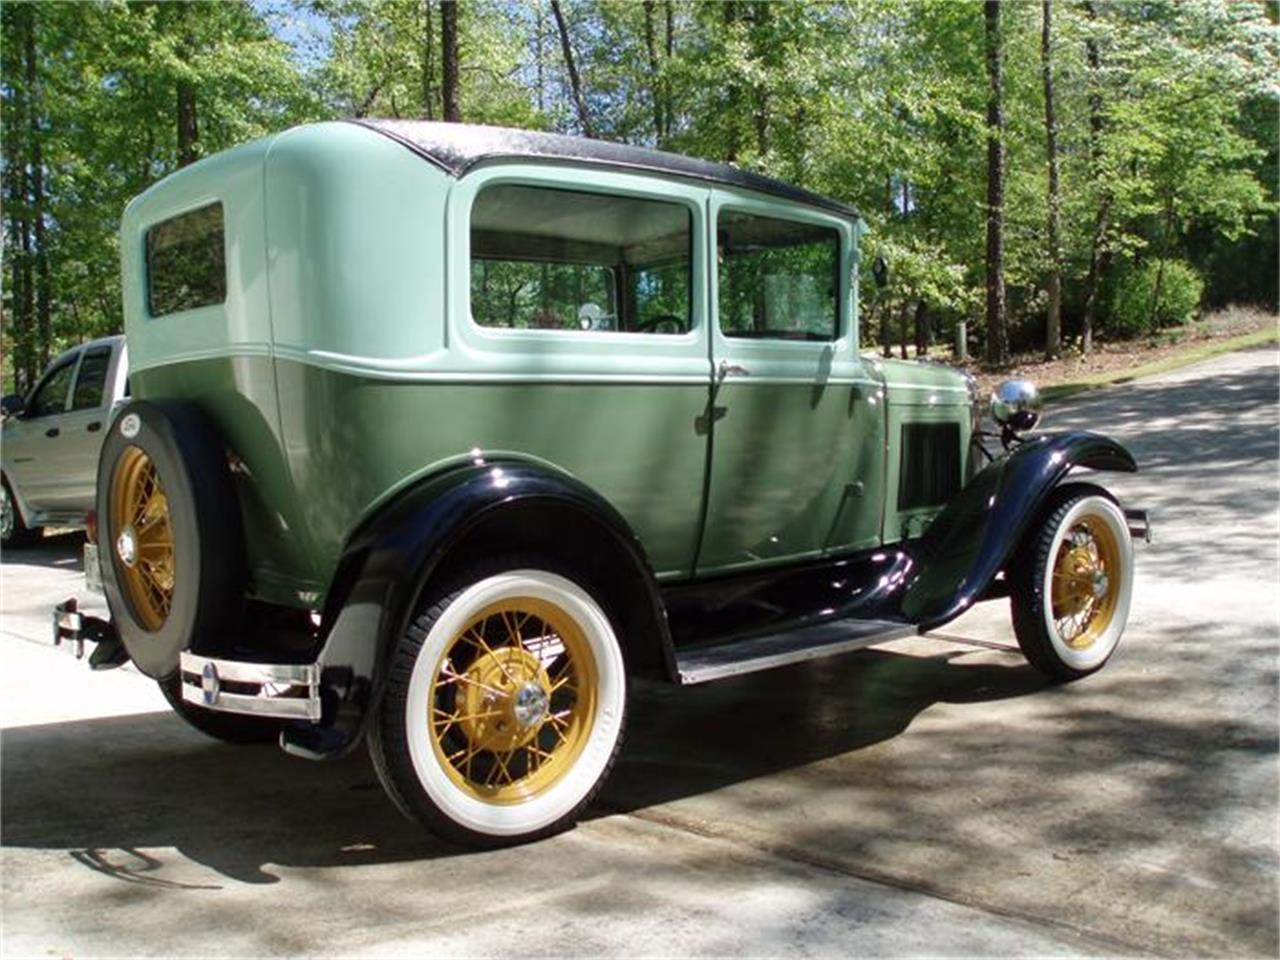 Large Picture of Classic '30 Ford Model A located in Georgia - $14,500.00 Offered by a Private Seller - AZW